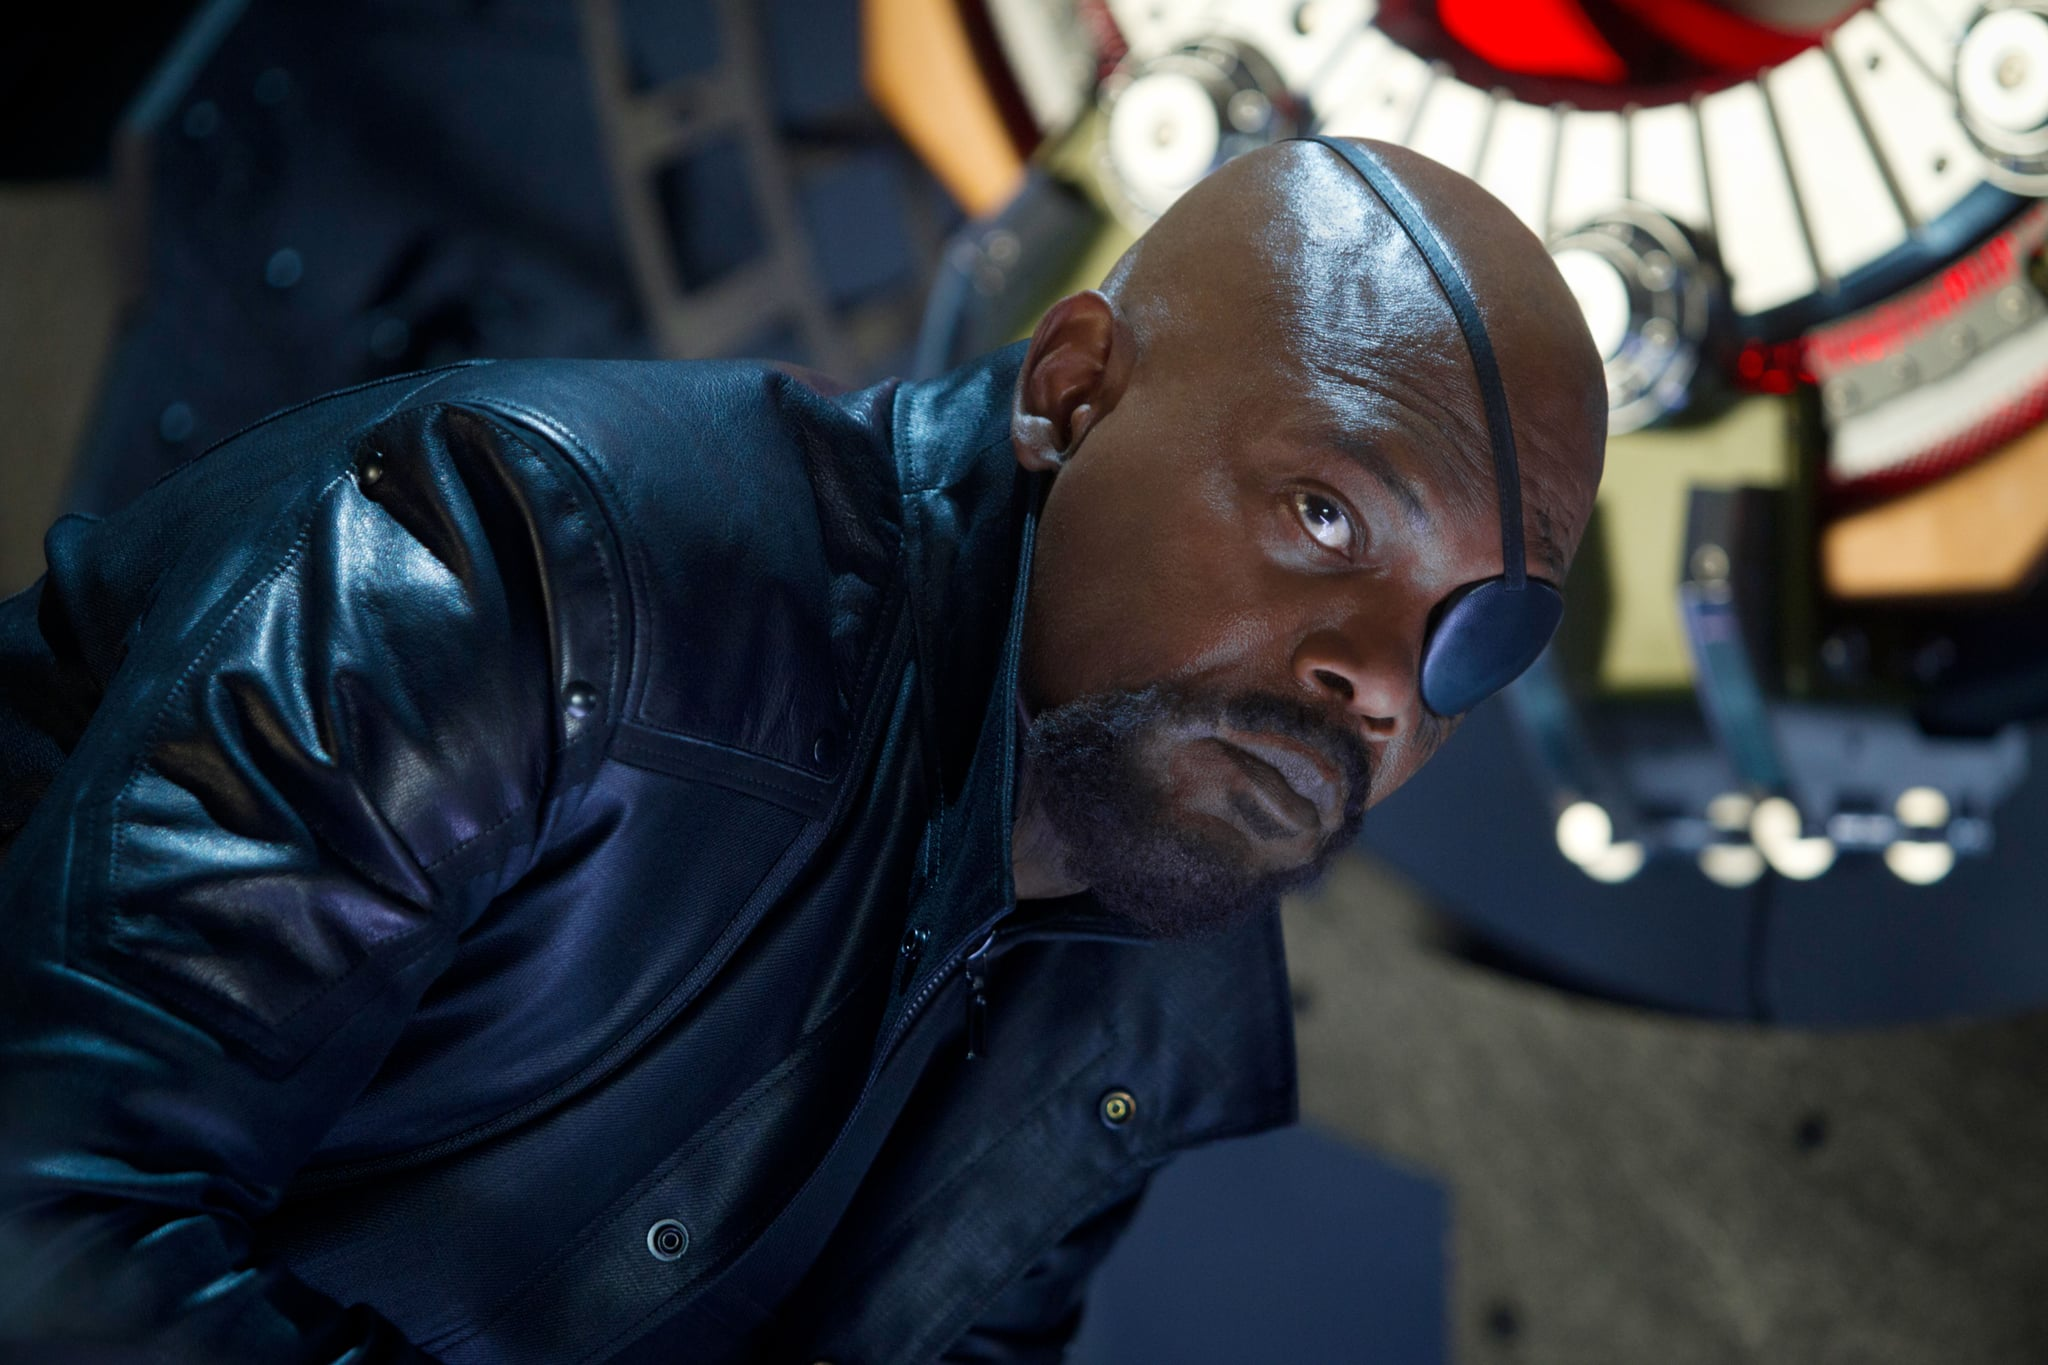 THE AVENGERS, Samuel L. Jackson (as Nick Fury), 2012, ph: Zade Rosenthal/Walt Disney Studios Motion Pictures/courtesy Everett Collection